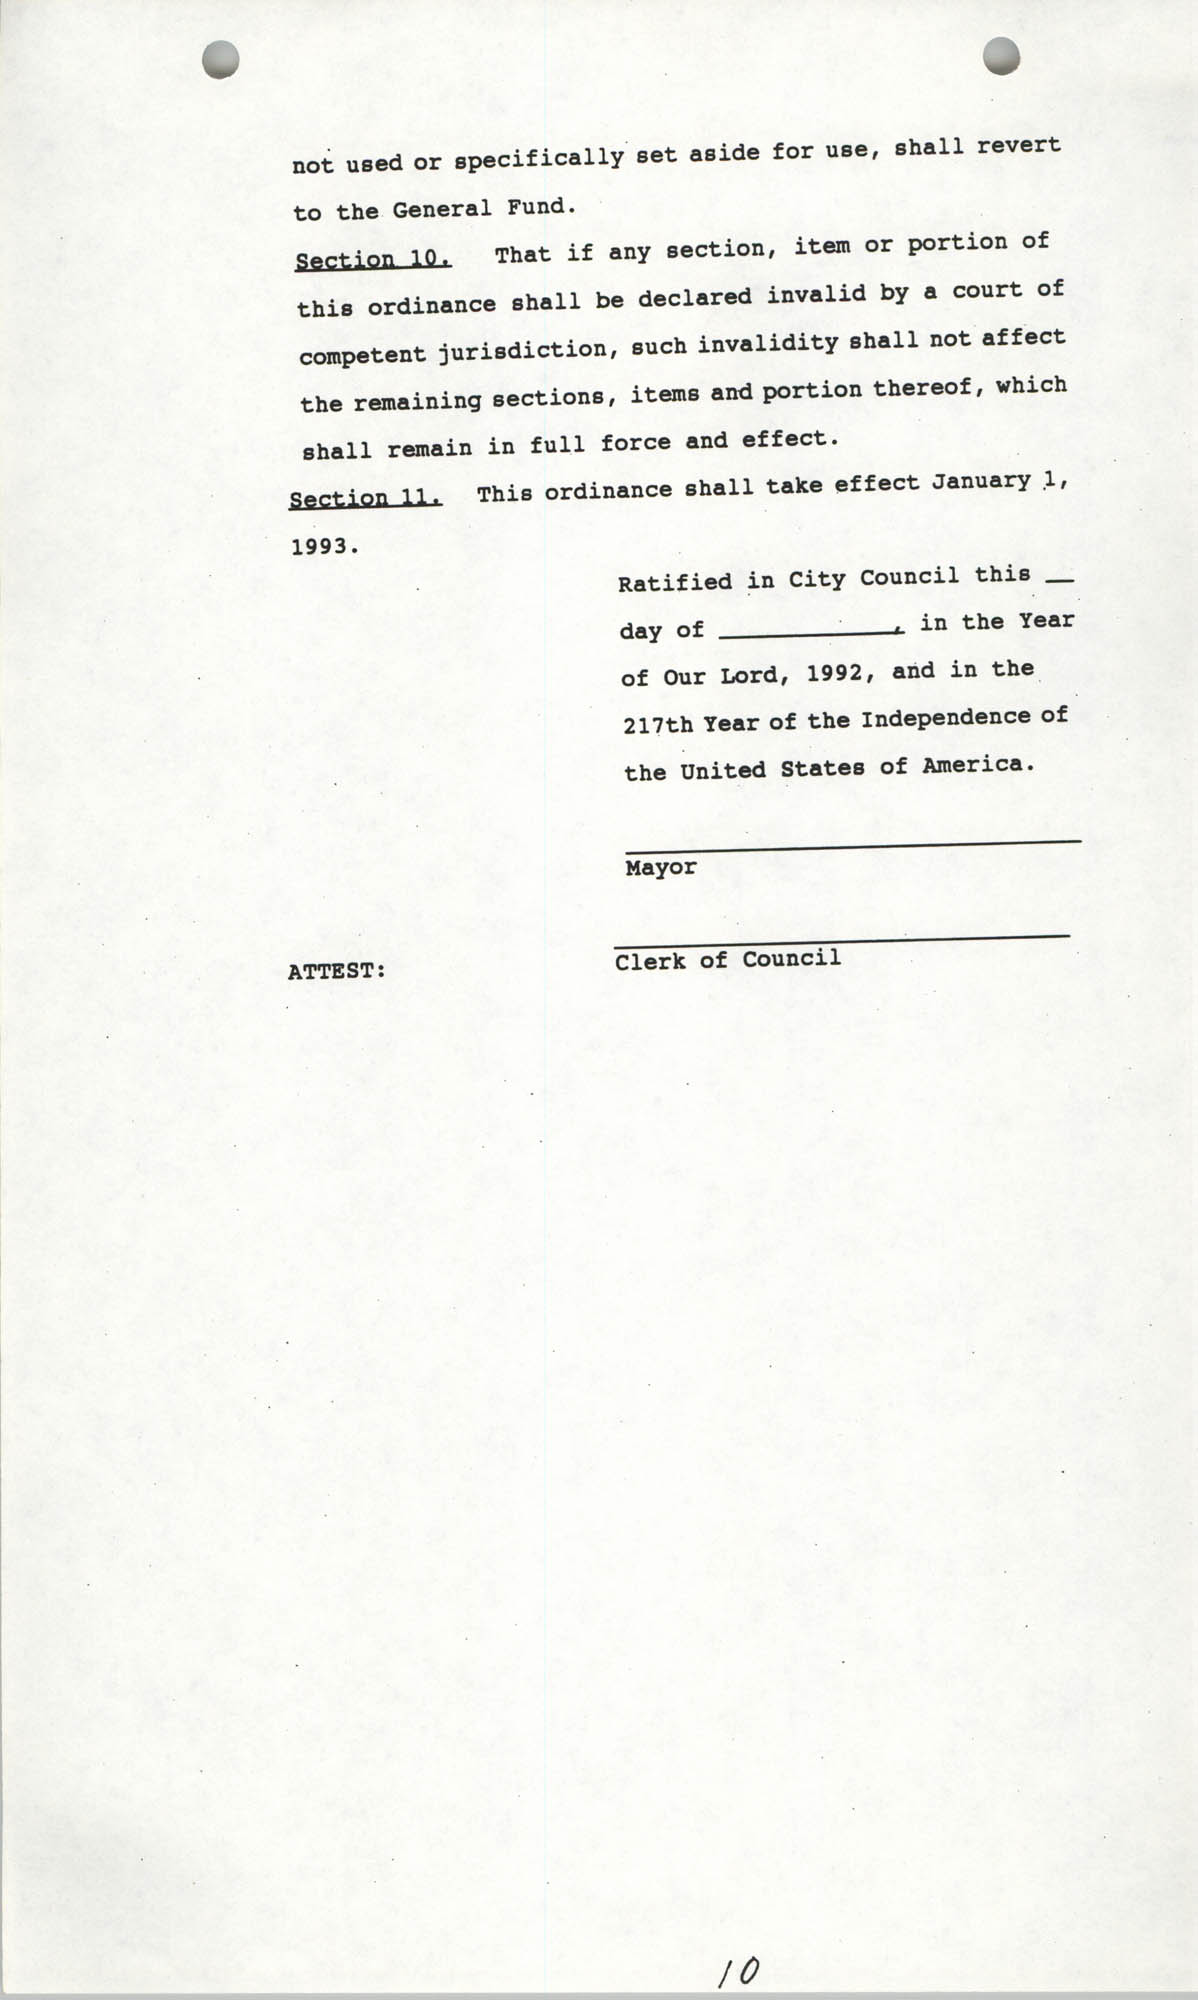 The City Council of Charleston, South Carolina, 1993 Budget, Page 10